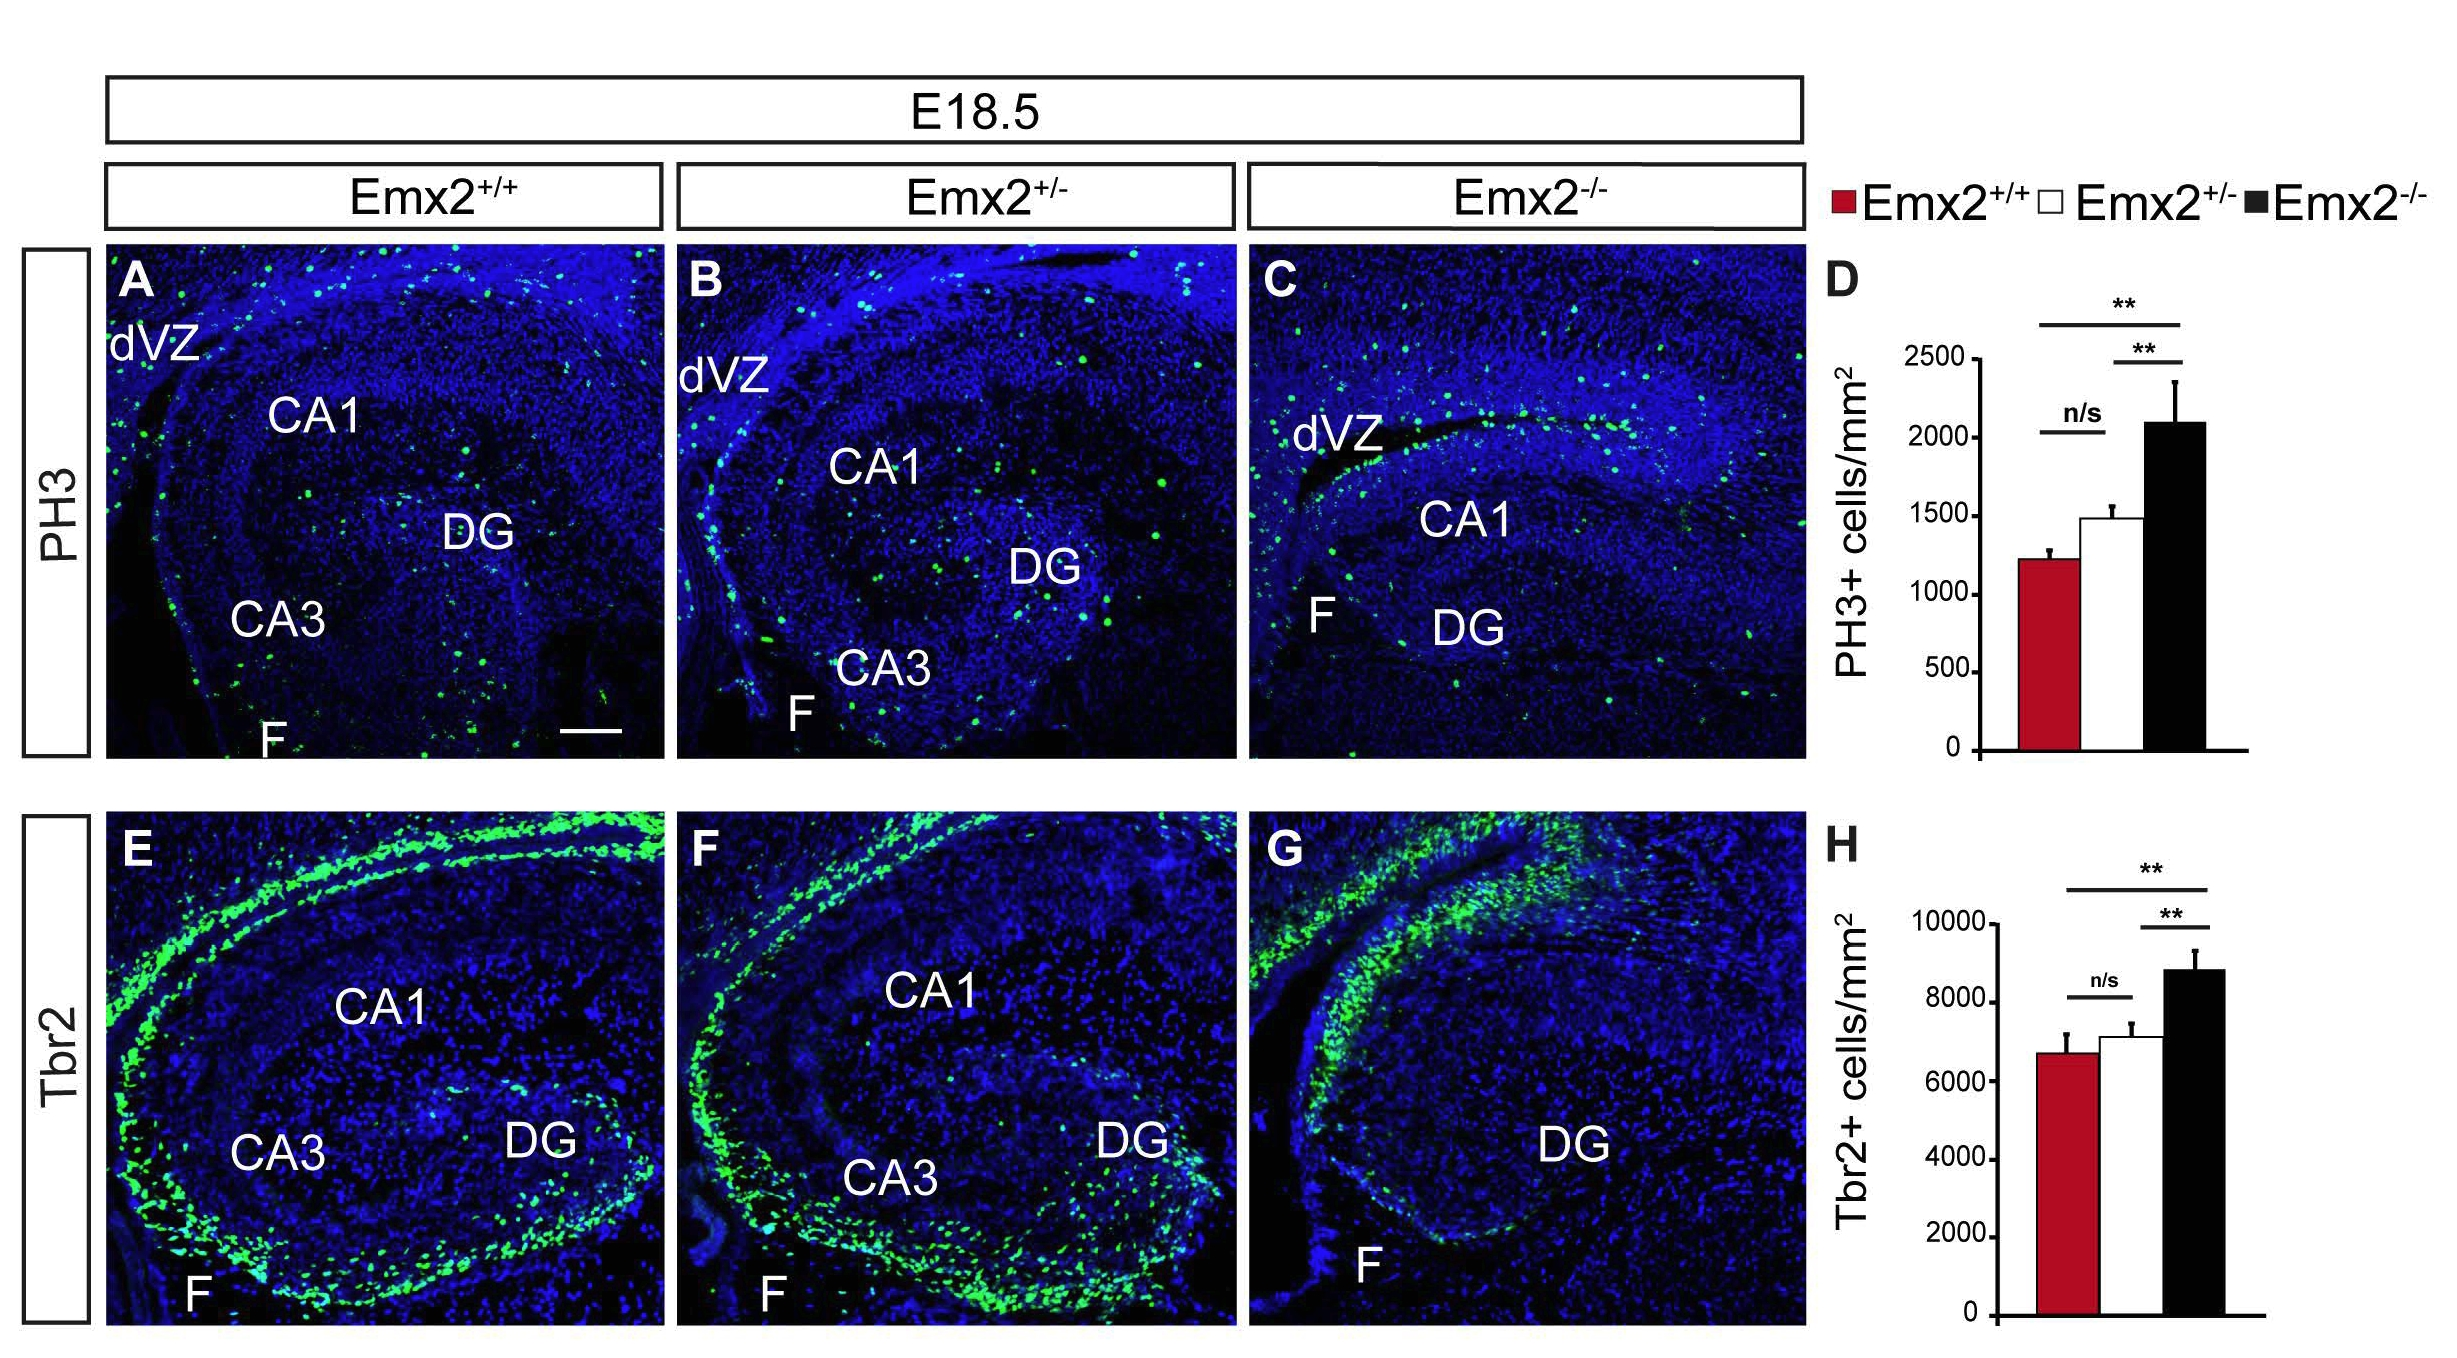 Figure 4. Emx2 mutant mice show an increase in the density of PH3 and Tbr2 positive cells in the VZ of the dorsal hippocampus. Sagittal sections of E18.5 (A-C and E-G) wt (A, E), heterocygous (B, F) and Emx2 mutant mice (C, G), showing immunohistochemistry of PH3 (A-C), or Tbr2 (E-G) marker. Quantification (D, H) of the expression of PH3 (D) or Tbr2 (H) in controls (red bar) het (white bars) and Emx2-/- mutant mice (black bars) by cell density in the VZ of dorsal hippocampus. (CA1, Cornus Ammonis 1, CA3 Cornus Ammonis 3, DG, dentate gyrus, F, fimbria, dVZ, dorsal ventricular zone). Scale bar (in A) A-C, E-C, 50 μm.